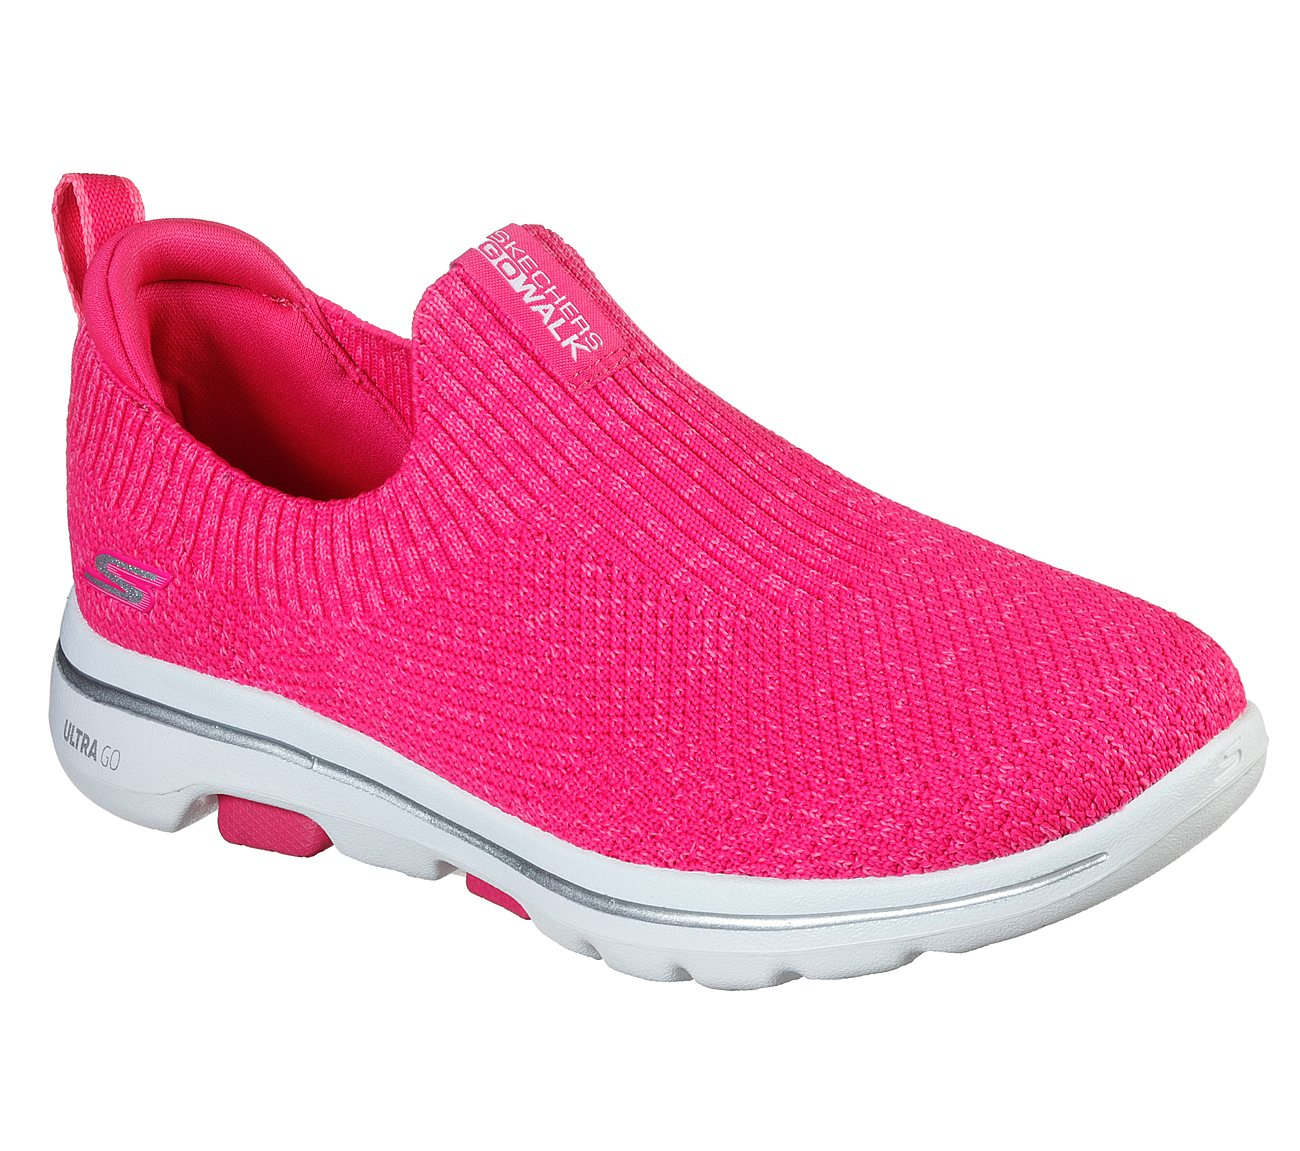 Buy SKECHERS Skechers GOwalk 5 - Trendy